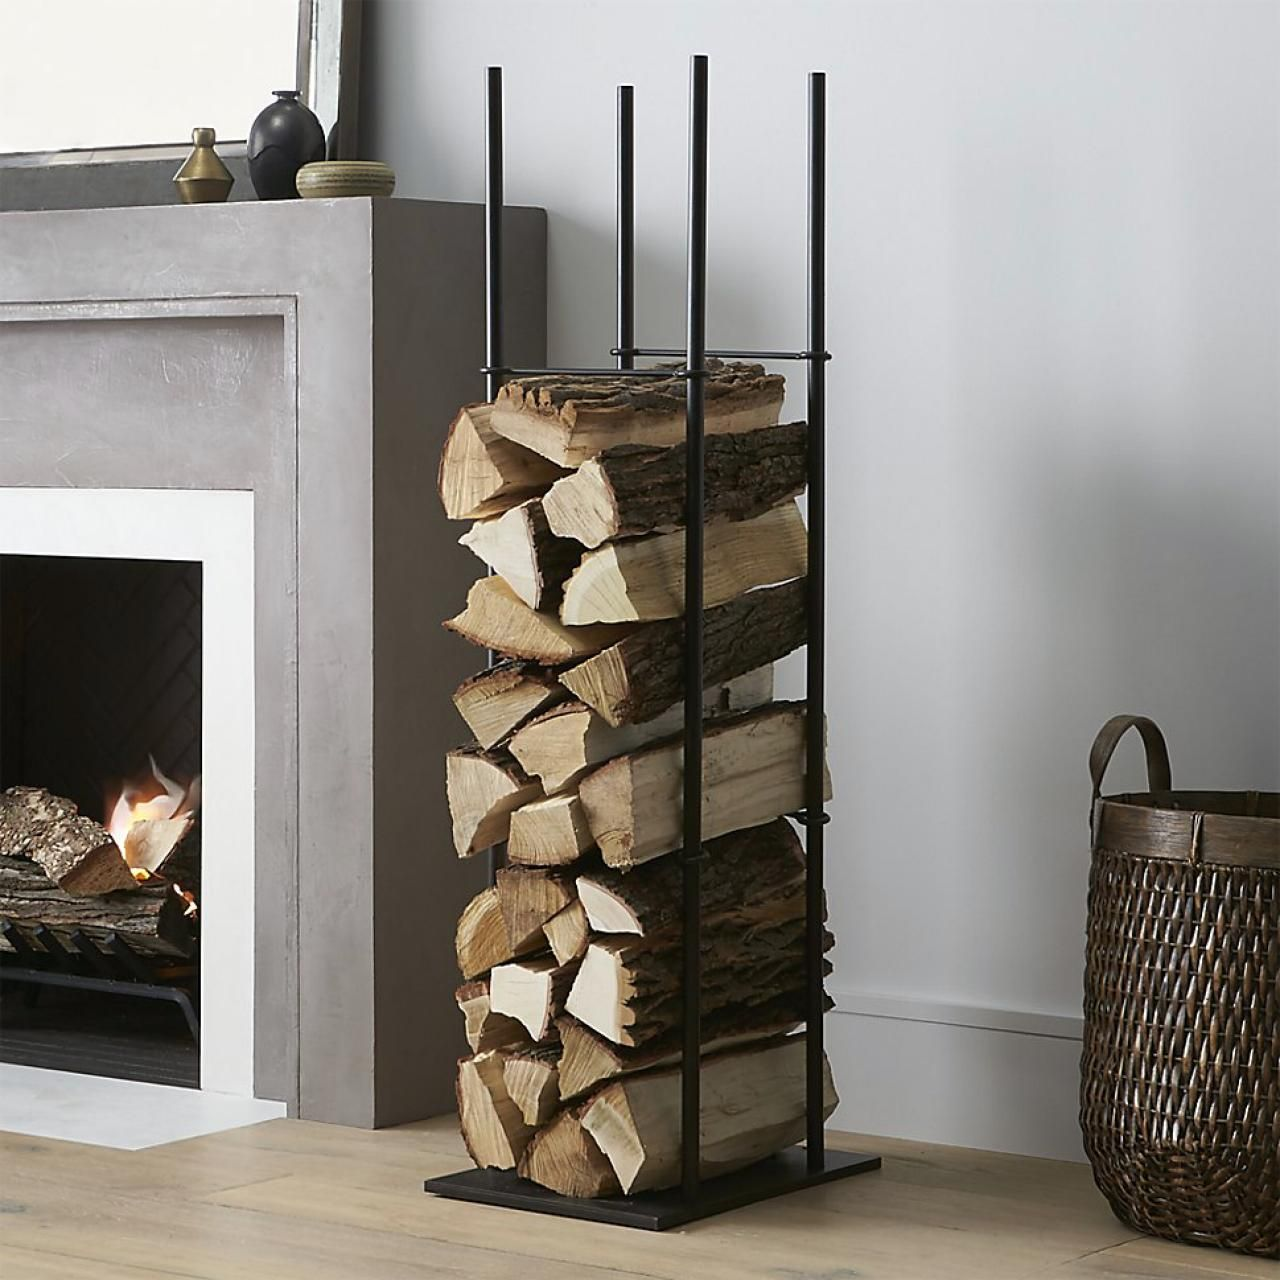 Vertically Stacked Storage Space and Firewood Rack